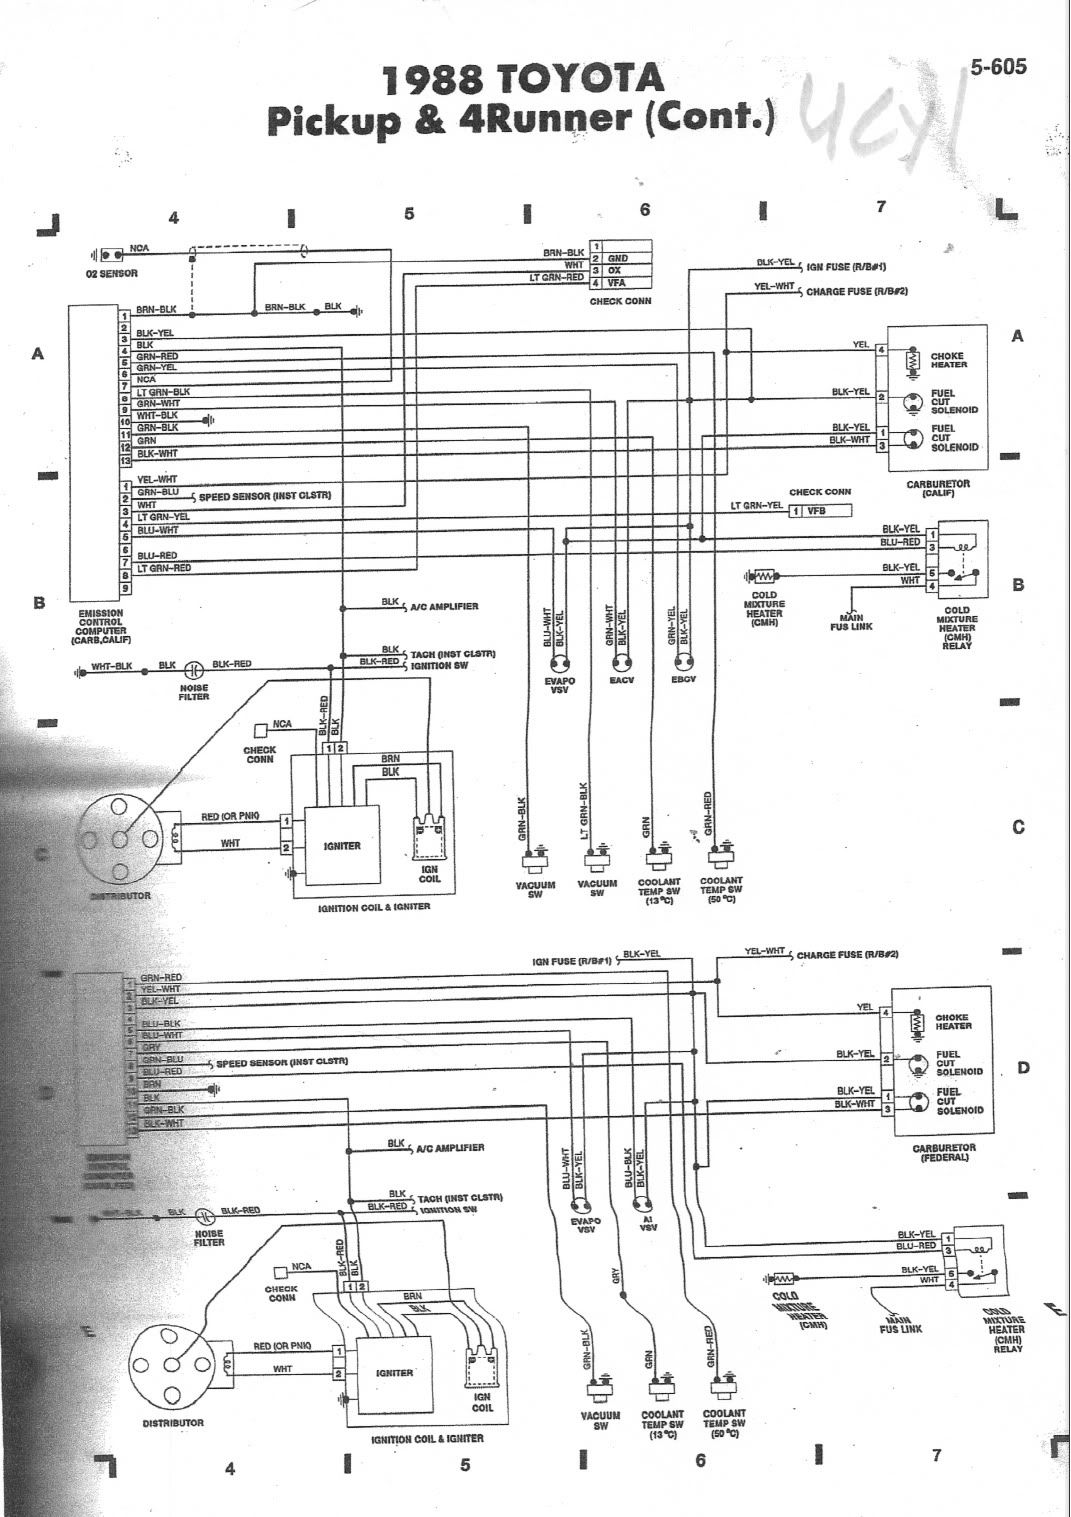 wiring diagram for toyota 4runner stereo exothermic reaction energy 3988 3vze 5 speed help page 2 yotatech